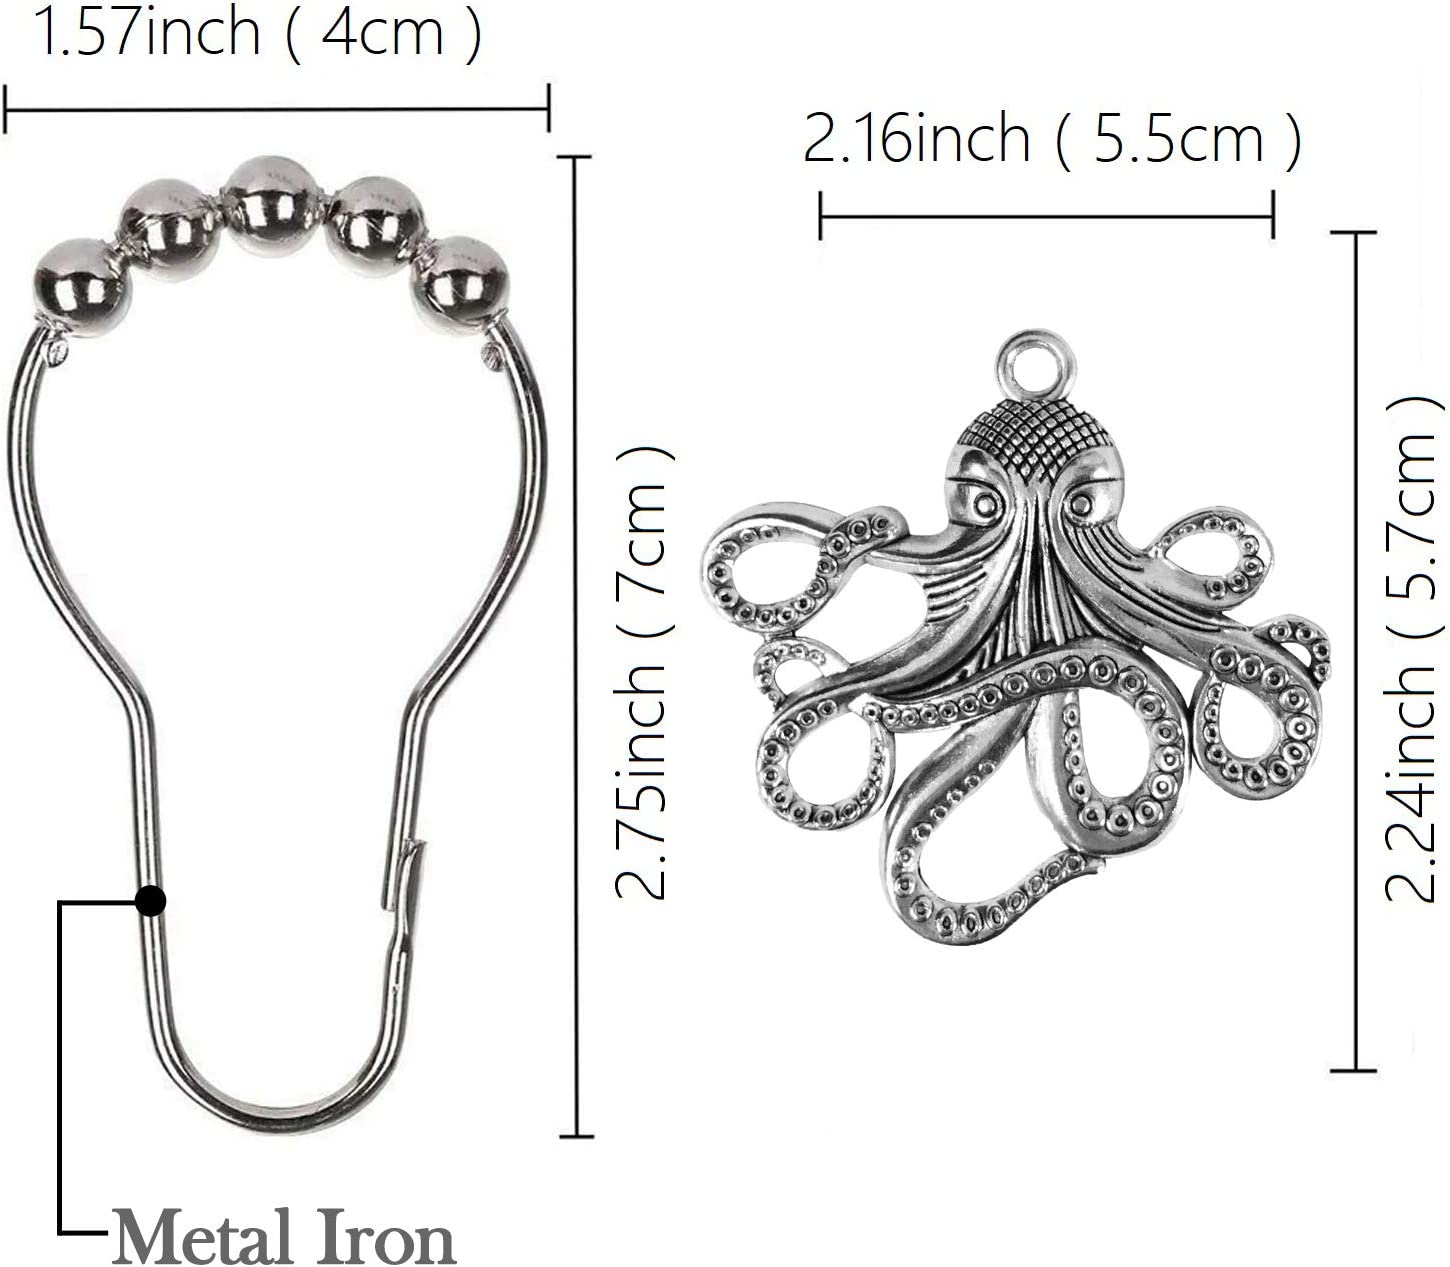 Black ZILucky Set of 12 Octopus Shower Curtain Hooks Decorative Home Bathroom Squid Sea Creature Beast Stainless Steel Rustproof Brushed Nickel Rings with Octopus Decorative Accessories